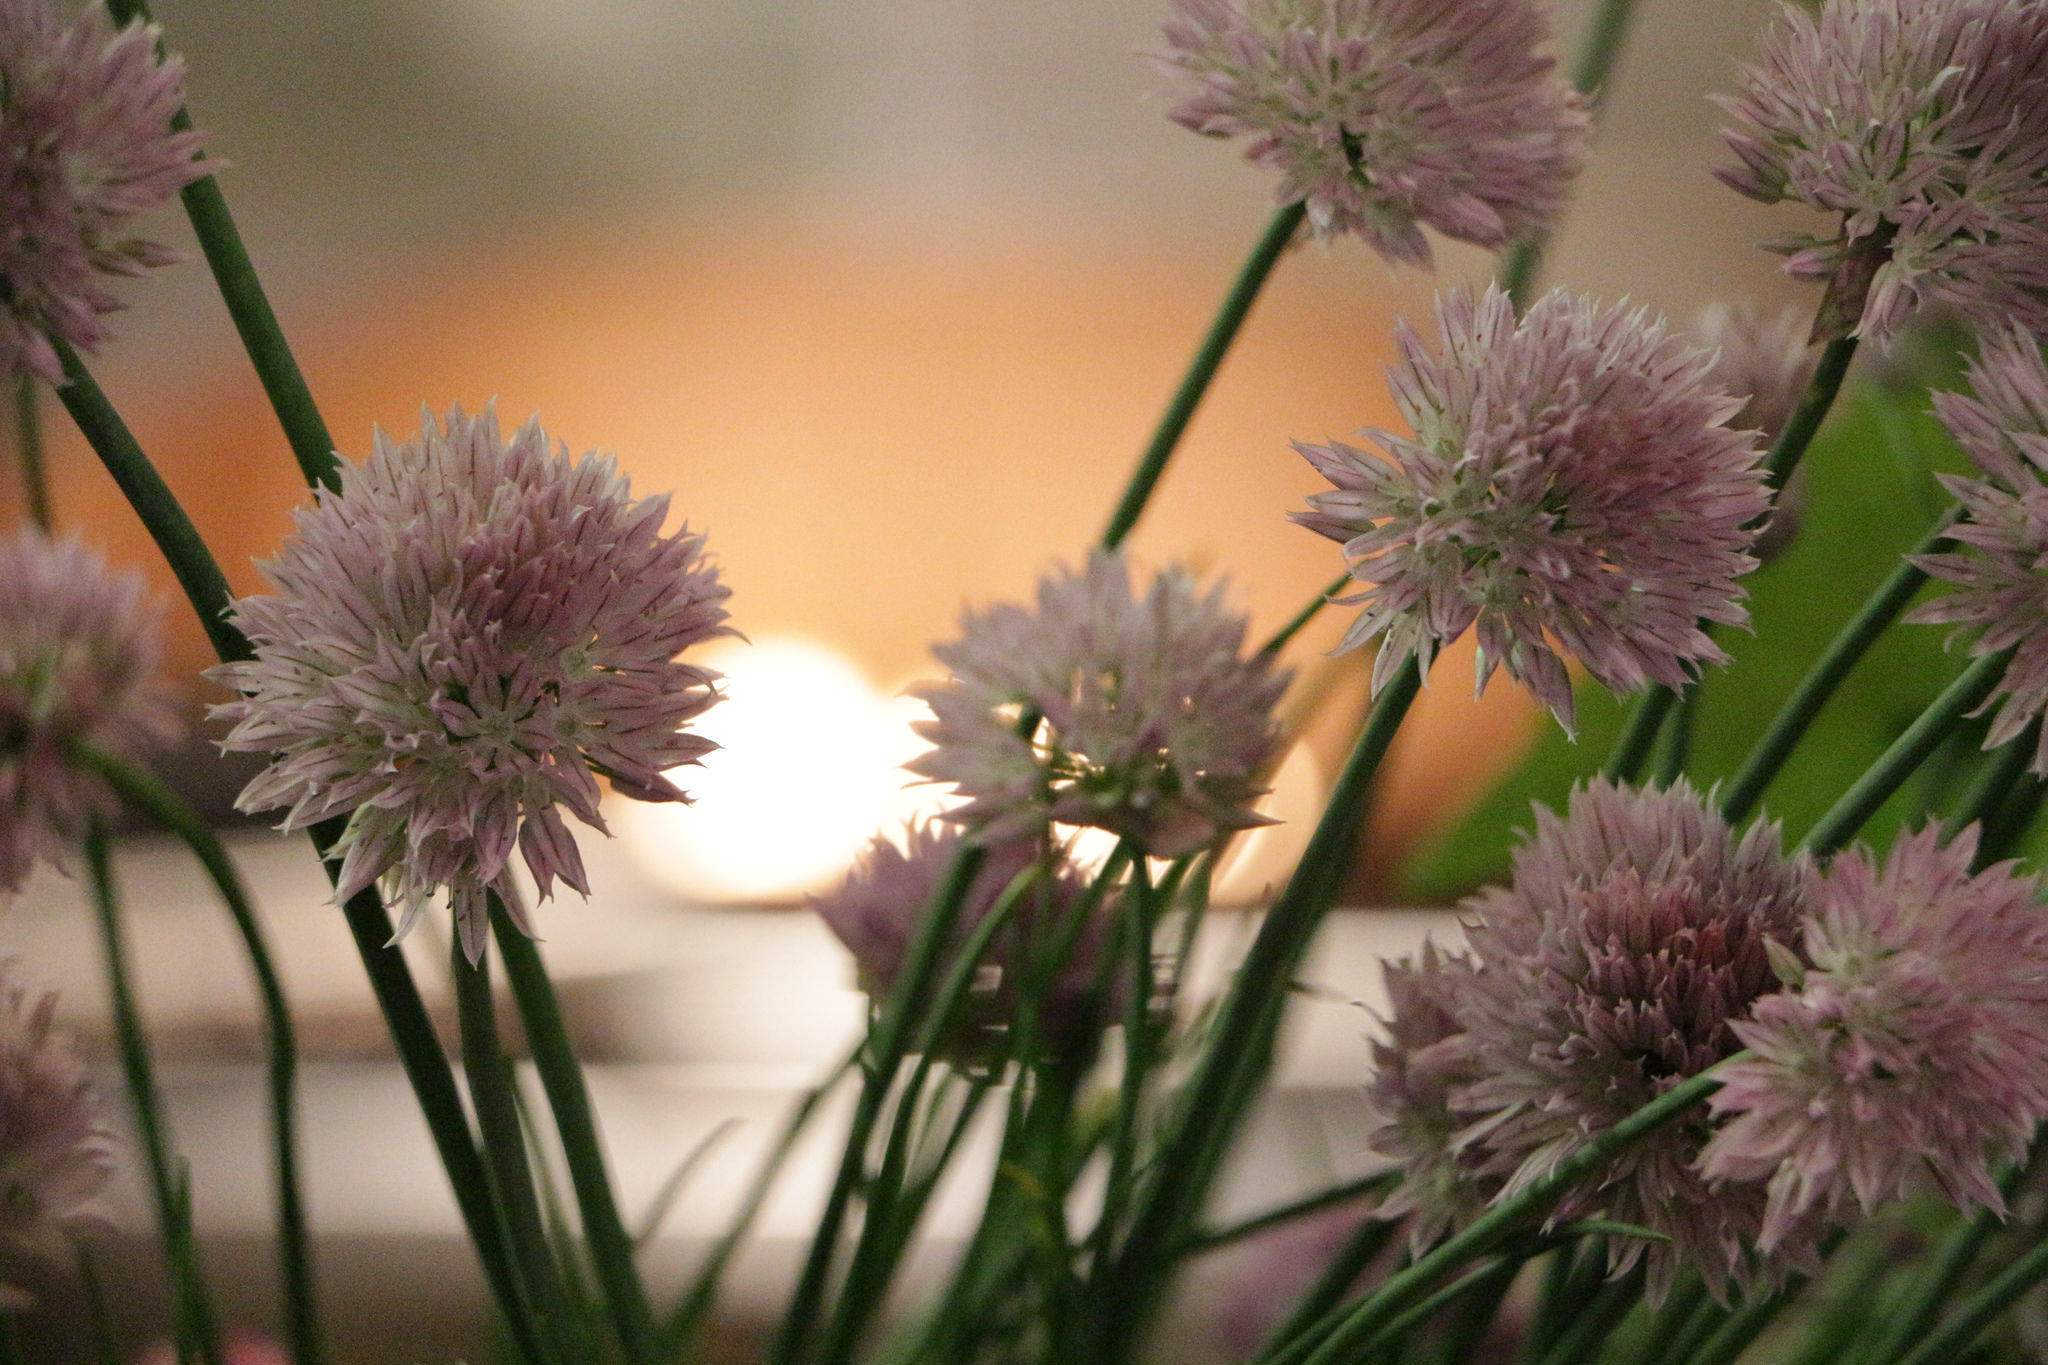 Chive blossoms are one of many spring edibles in the garden. Break these pom-poms apart and sprinkle them on salads, soups or use as a garnish on most any savory dish. (Eoban Binder/WFIU)